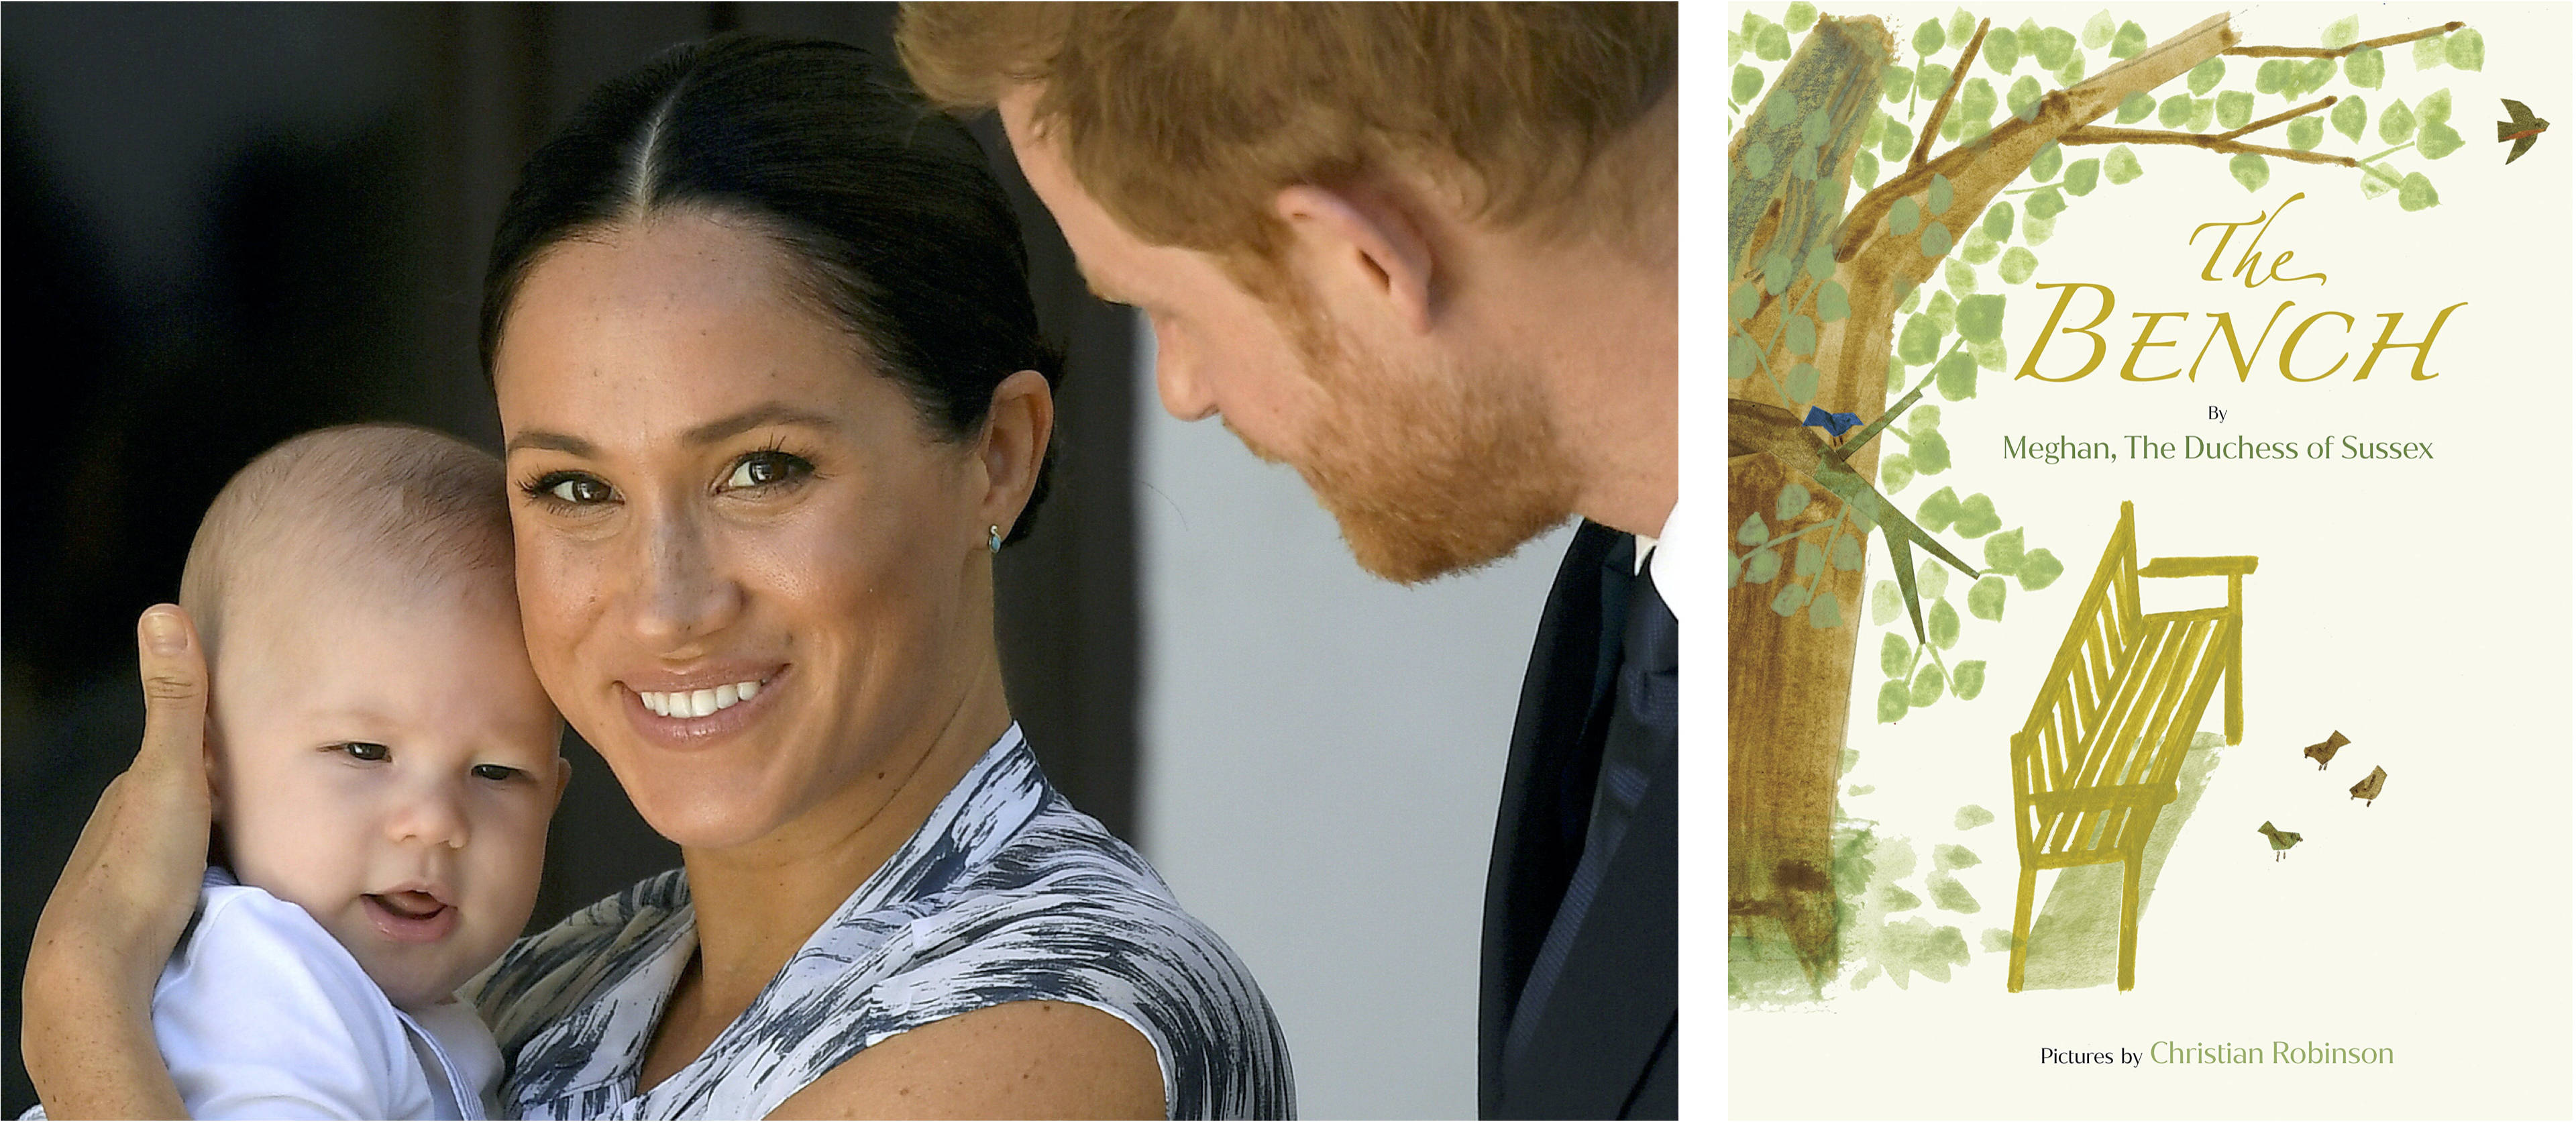 Prince Harry and his wife, Meghan, Duchess of Sussex, holding their son, Archie, in 2019 (Reuters file photo/Toby Melville); Random House Books for Young Readers